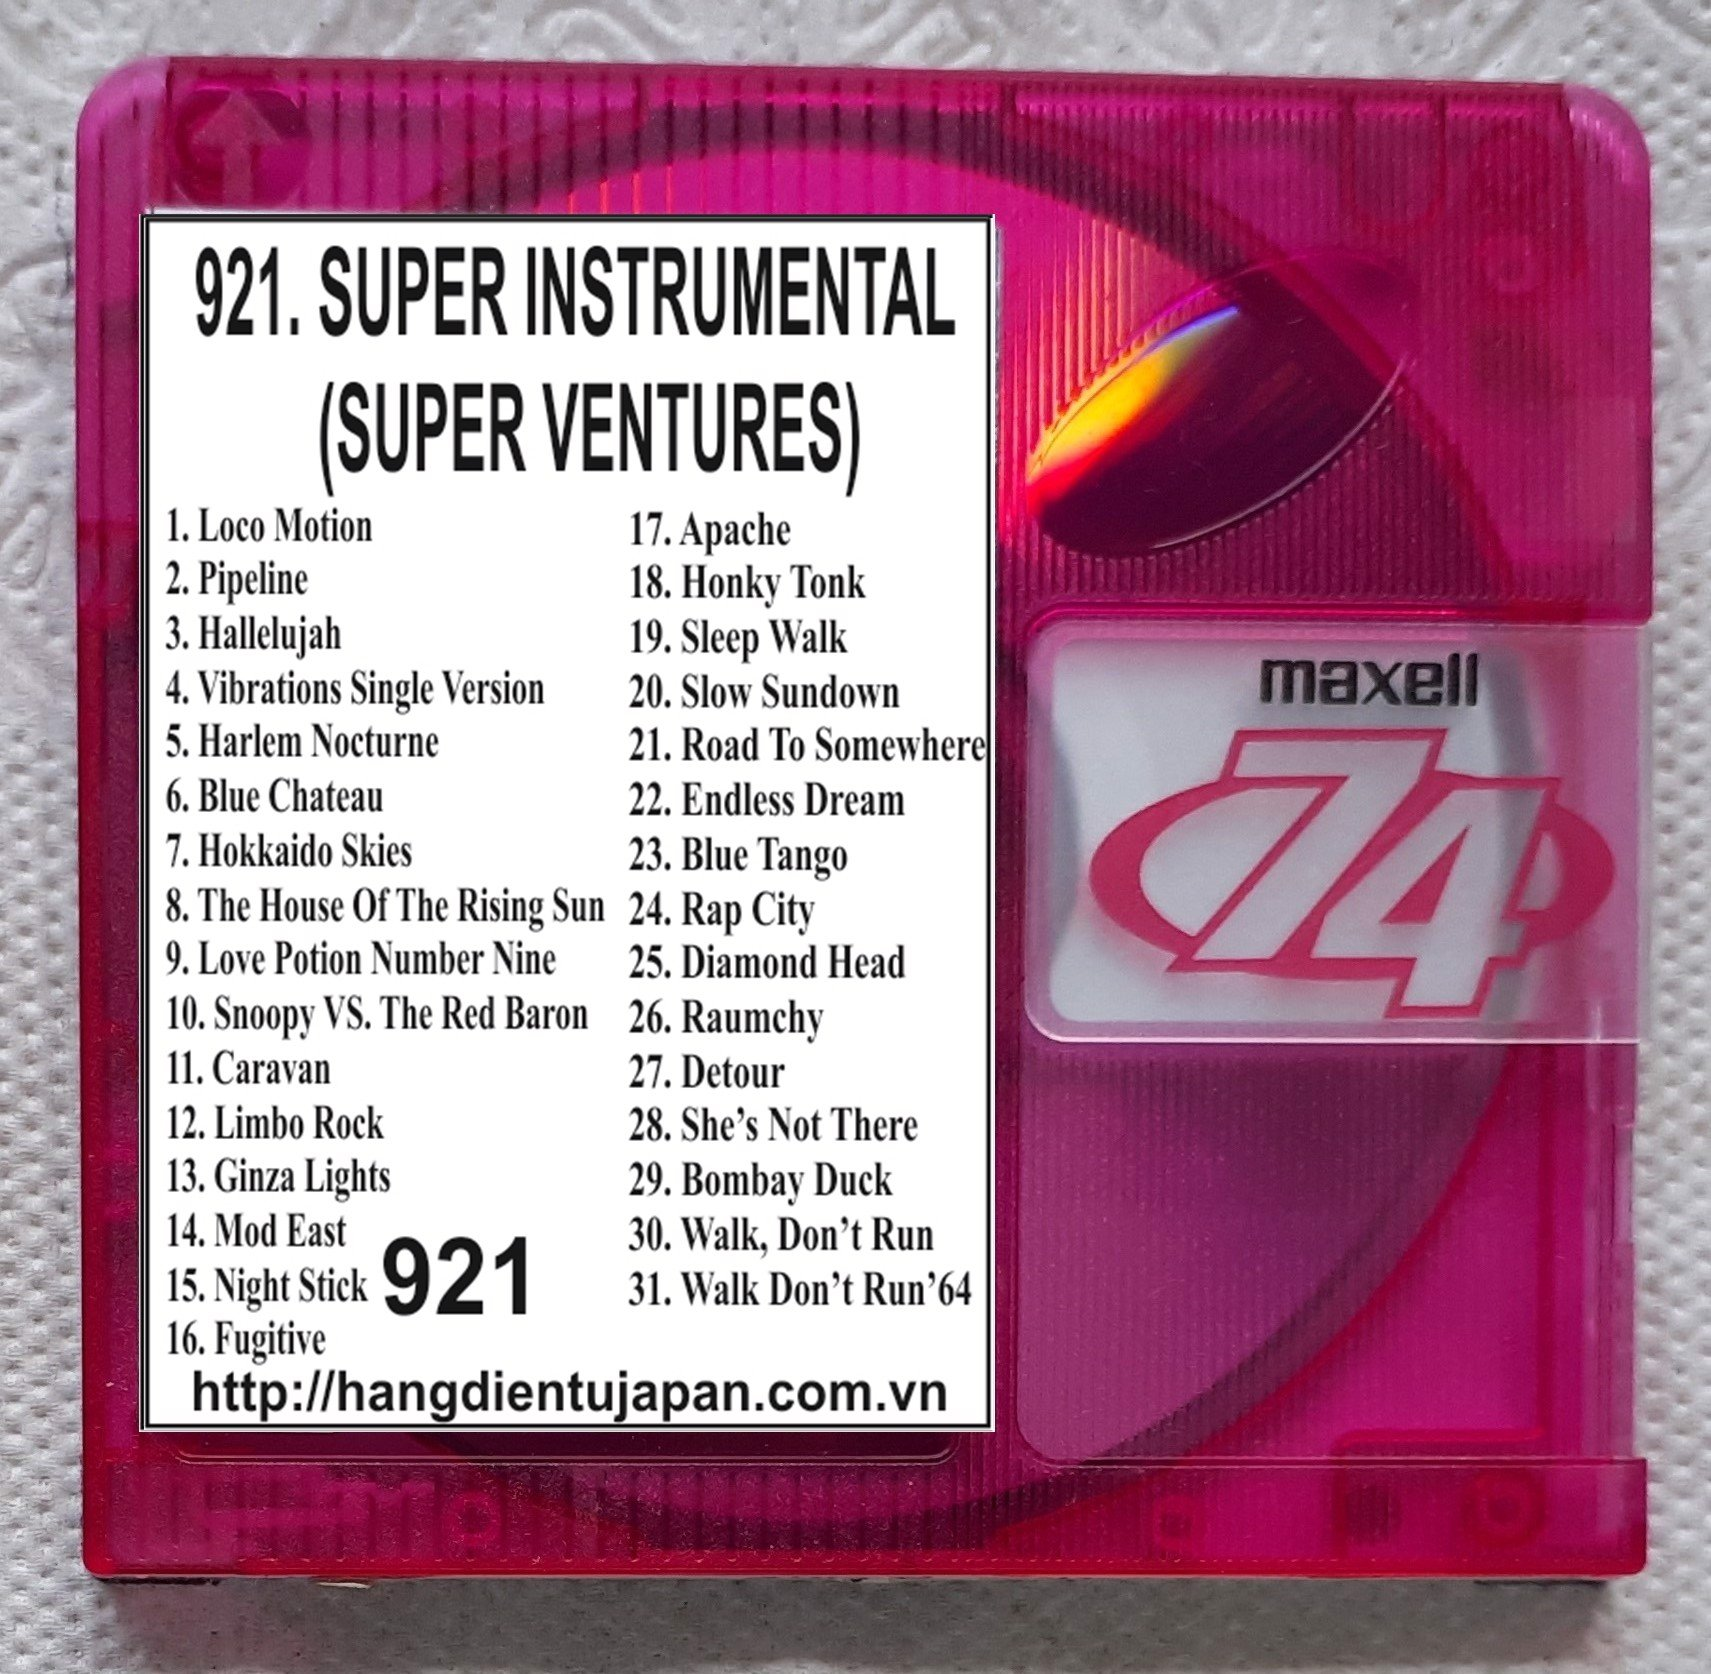 921 VOL 24_SUPER INSTRUMENTAL (SUPER VENTURES)